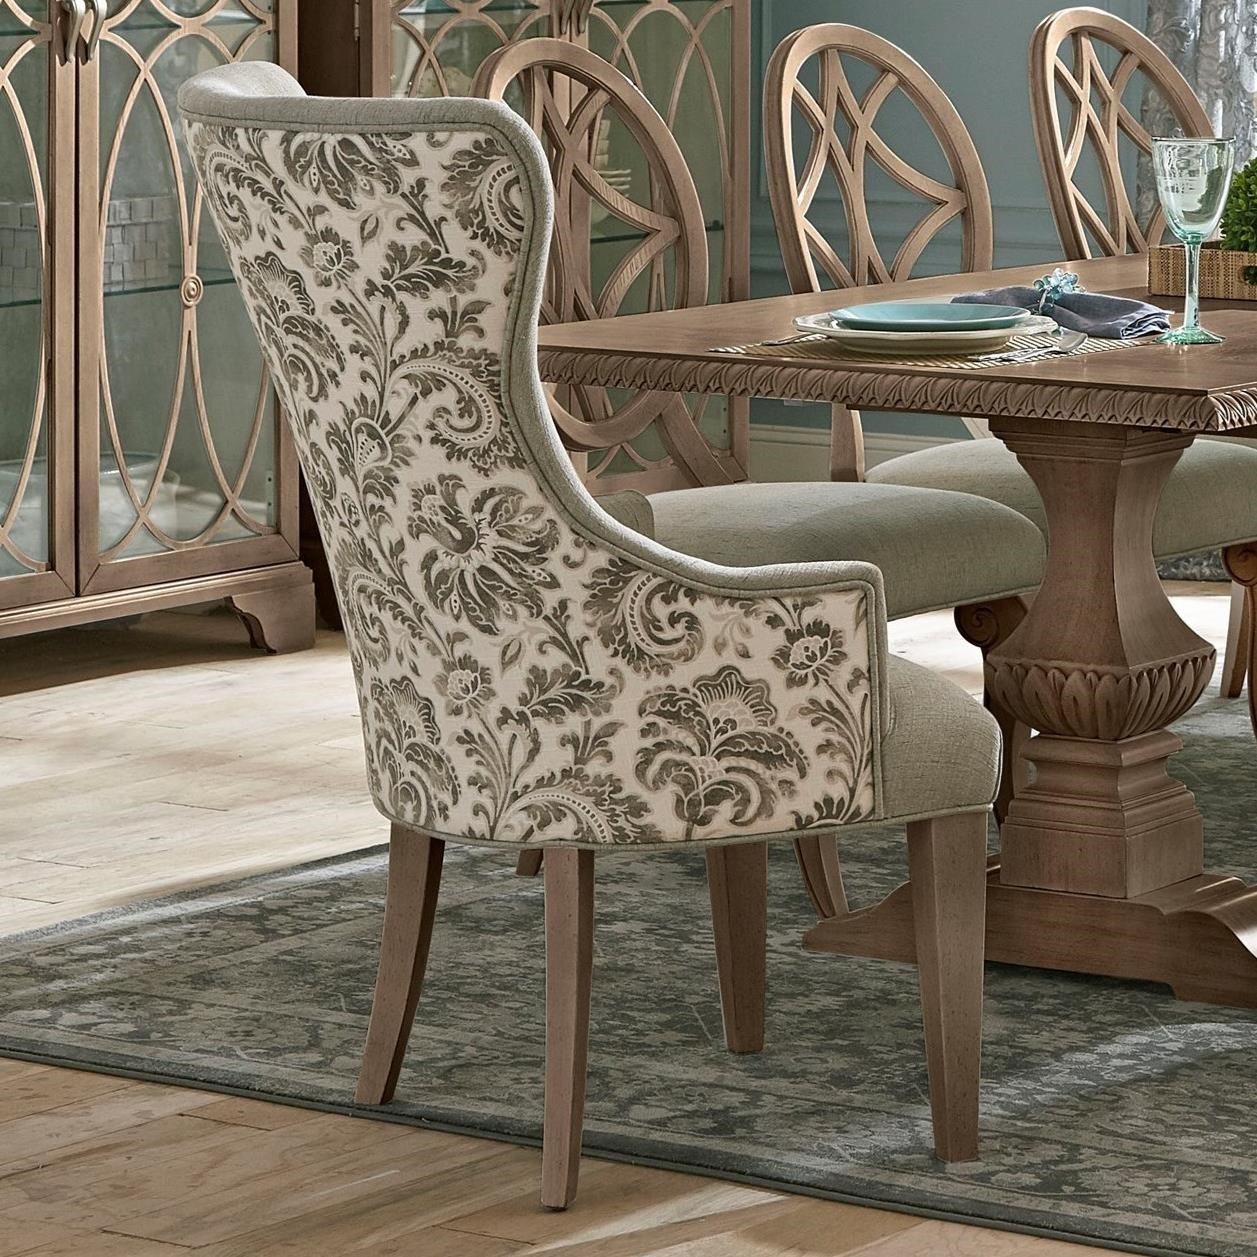 Picture of: Trisha Yearwood Home Collection By Klaussner Jasper County 791 906 Drc Vintage Dining Room Host Chair In Two Tone Fabric Hudson S Furniture Dining Arm Chairs